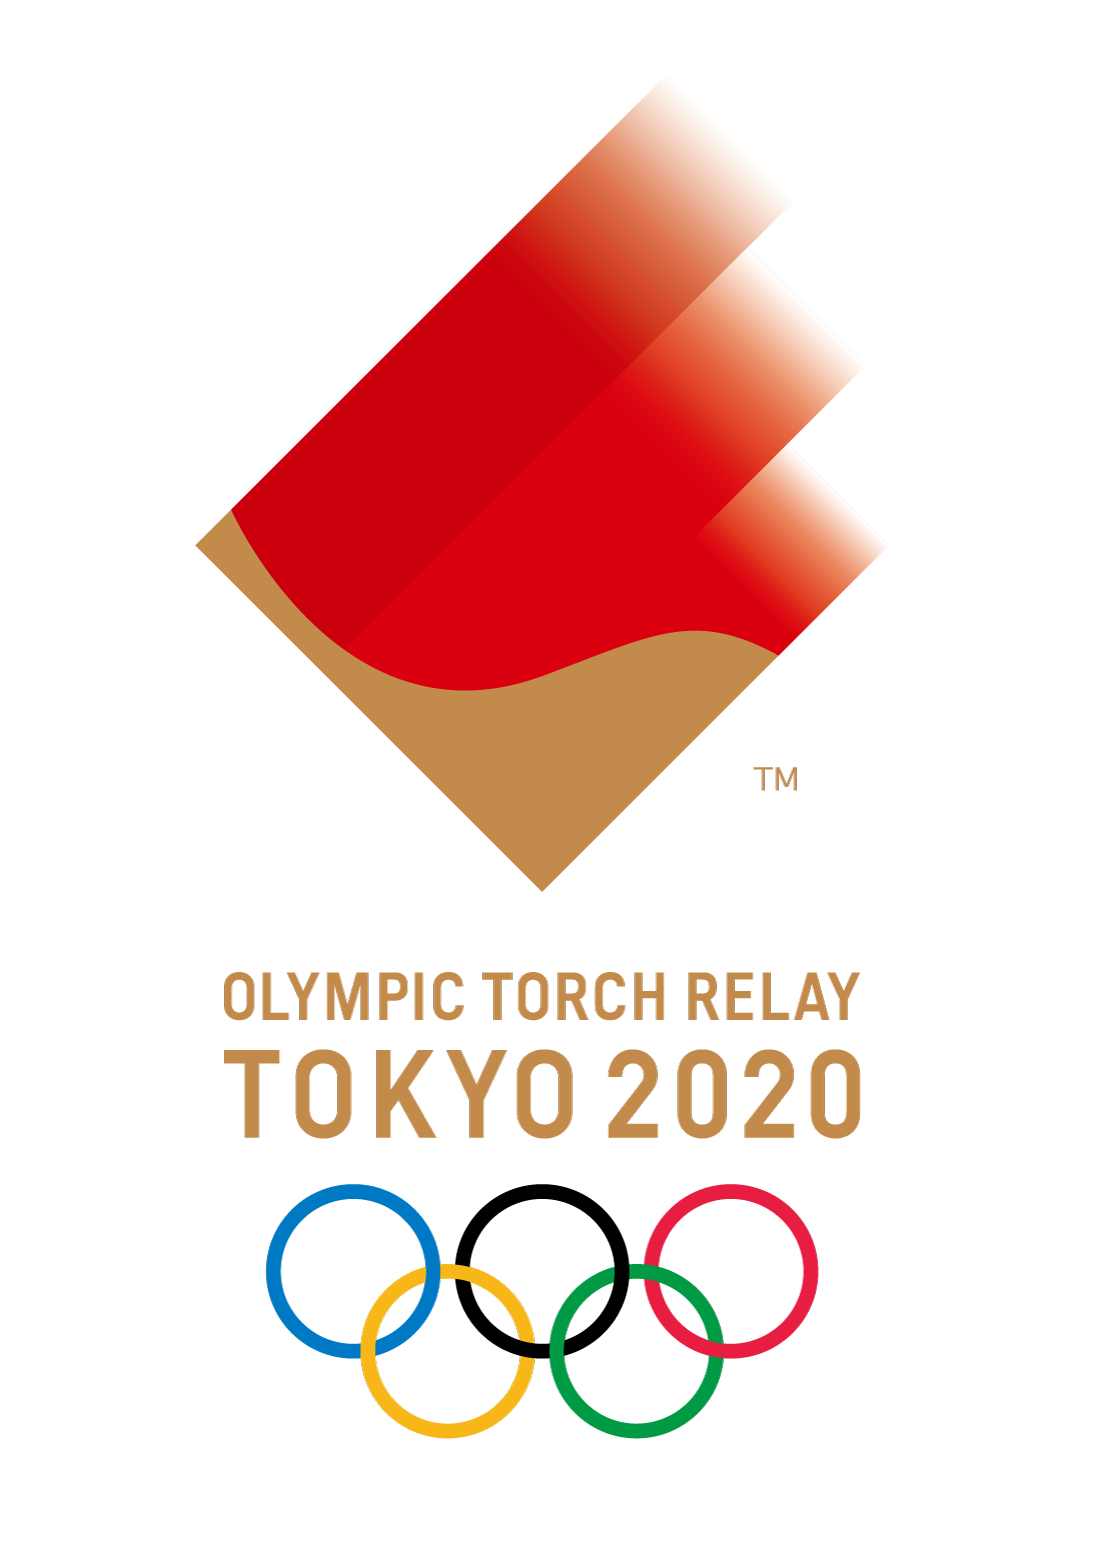 Olympic Torch Relay brand design 2020 olympics, Tokyo